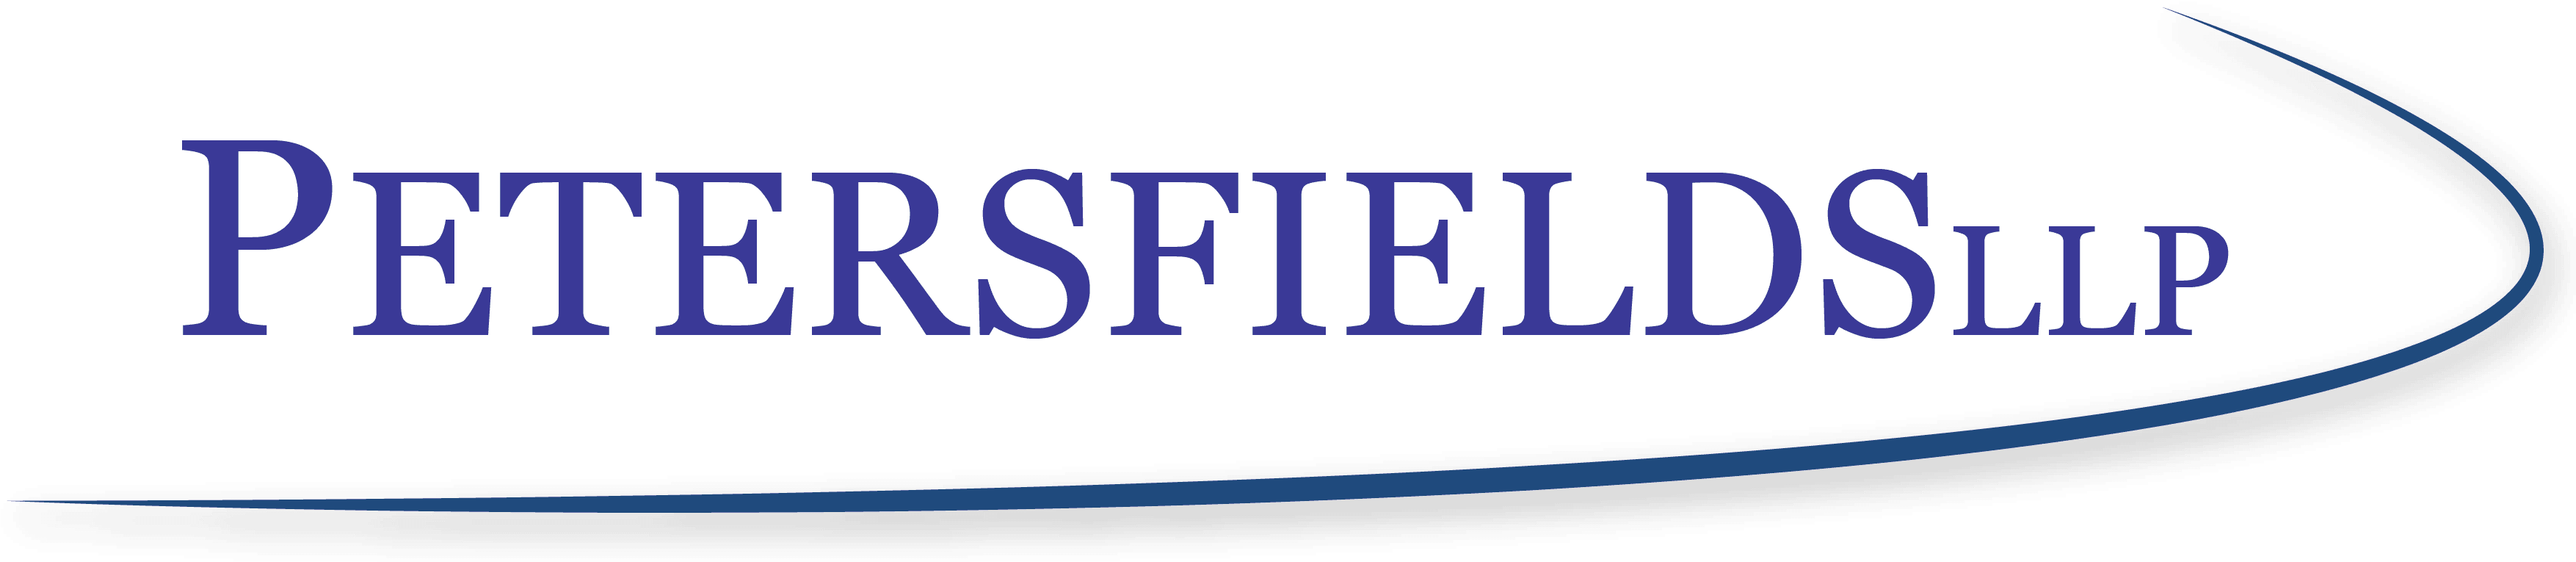 Petersfields LLP - Solicitors Cambridge, Milton & Haverhill